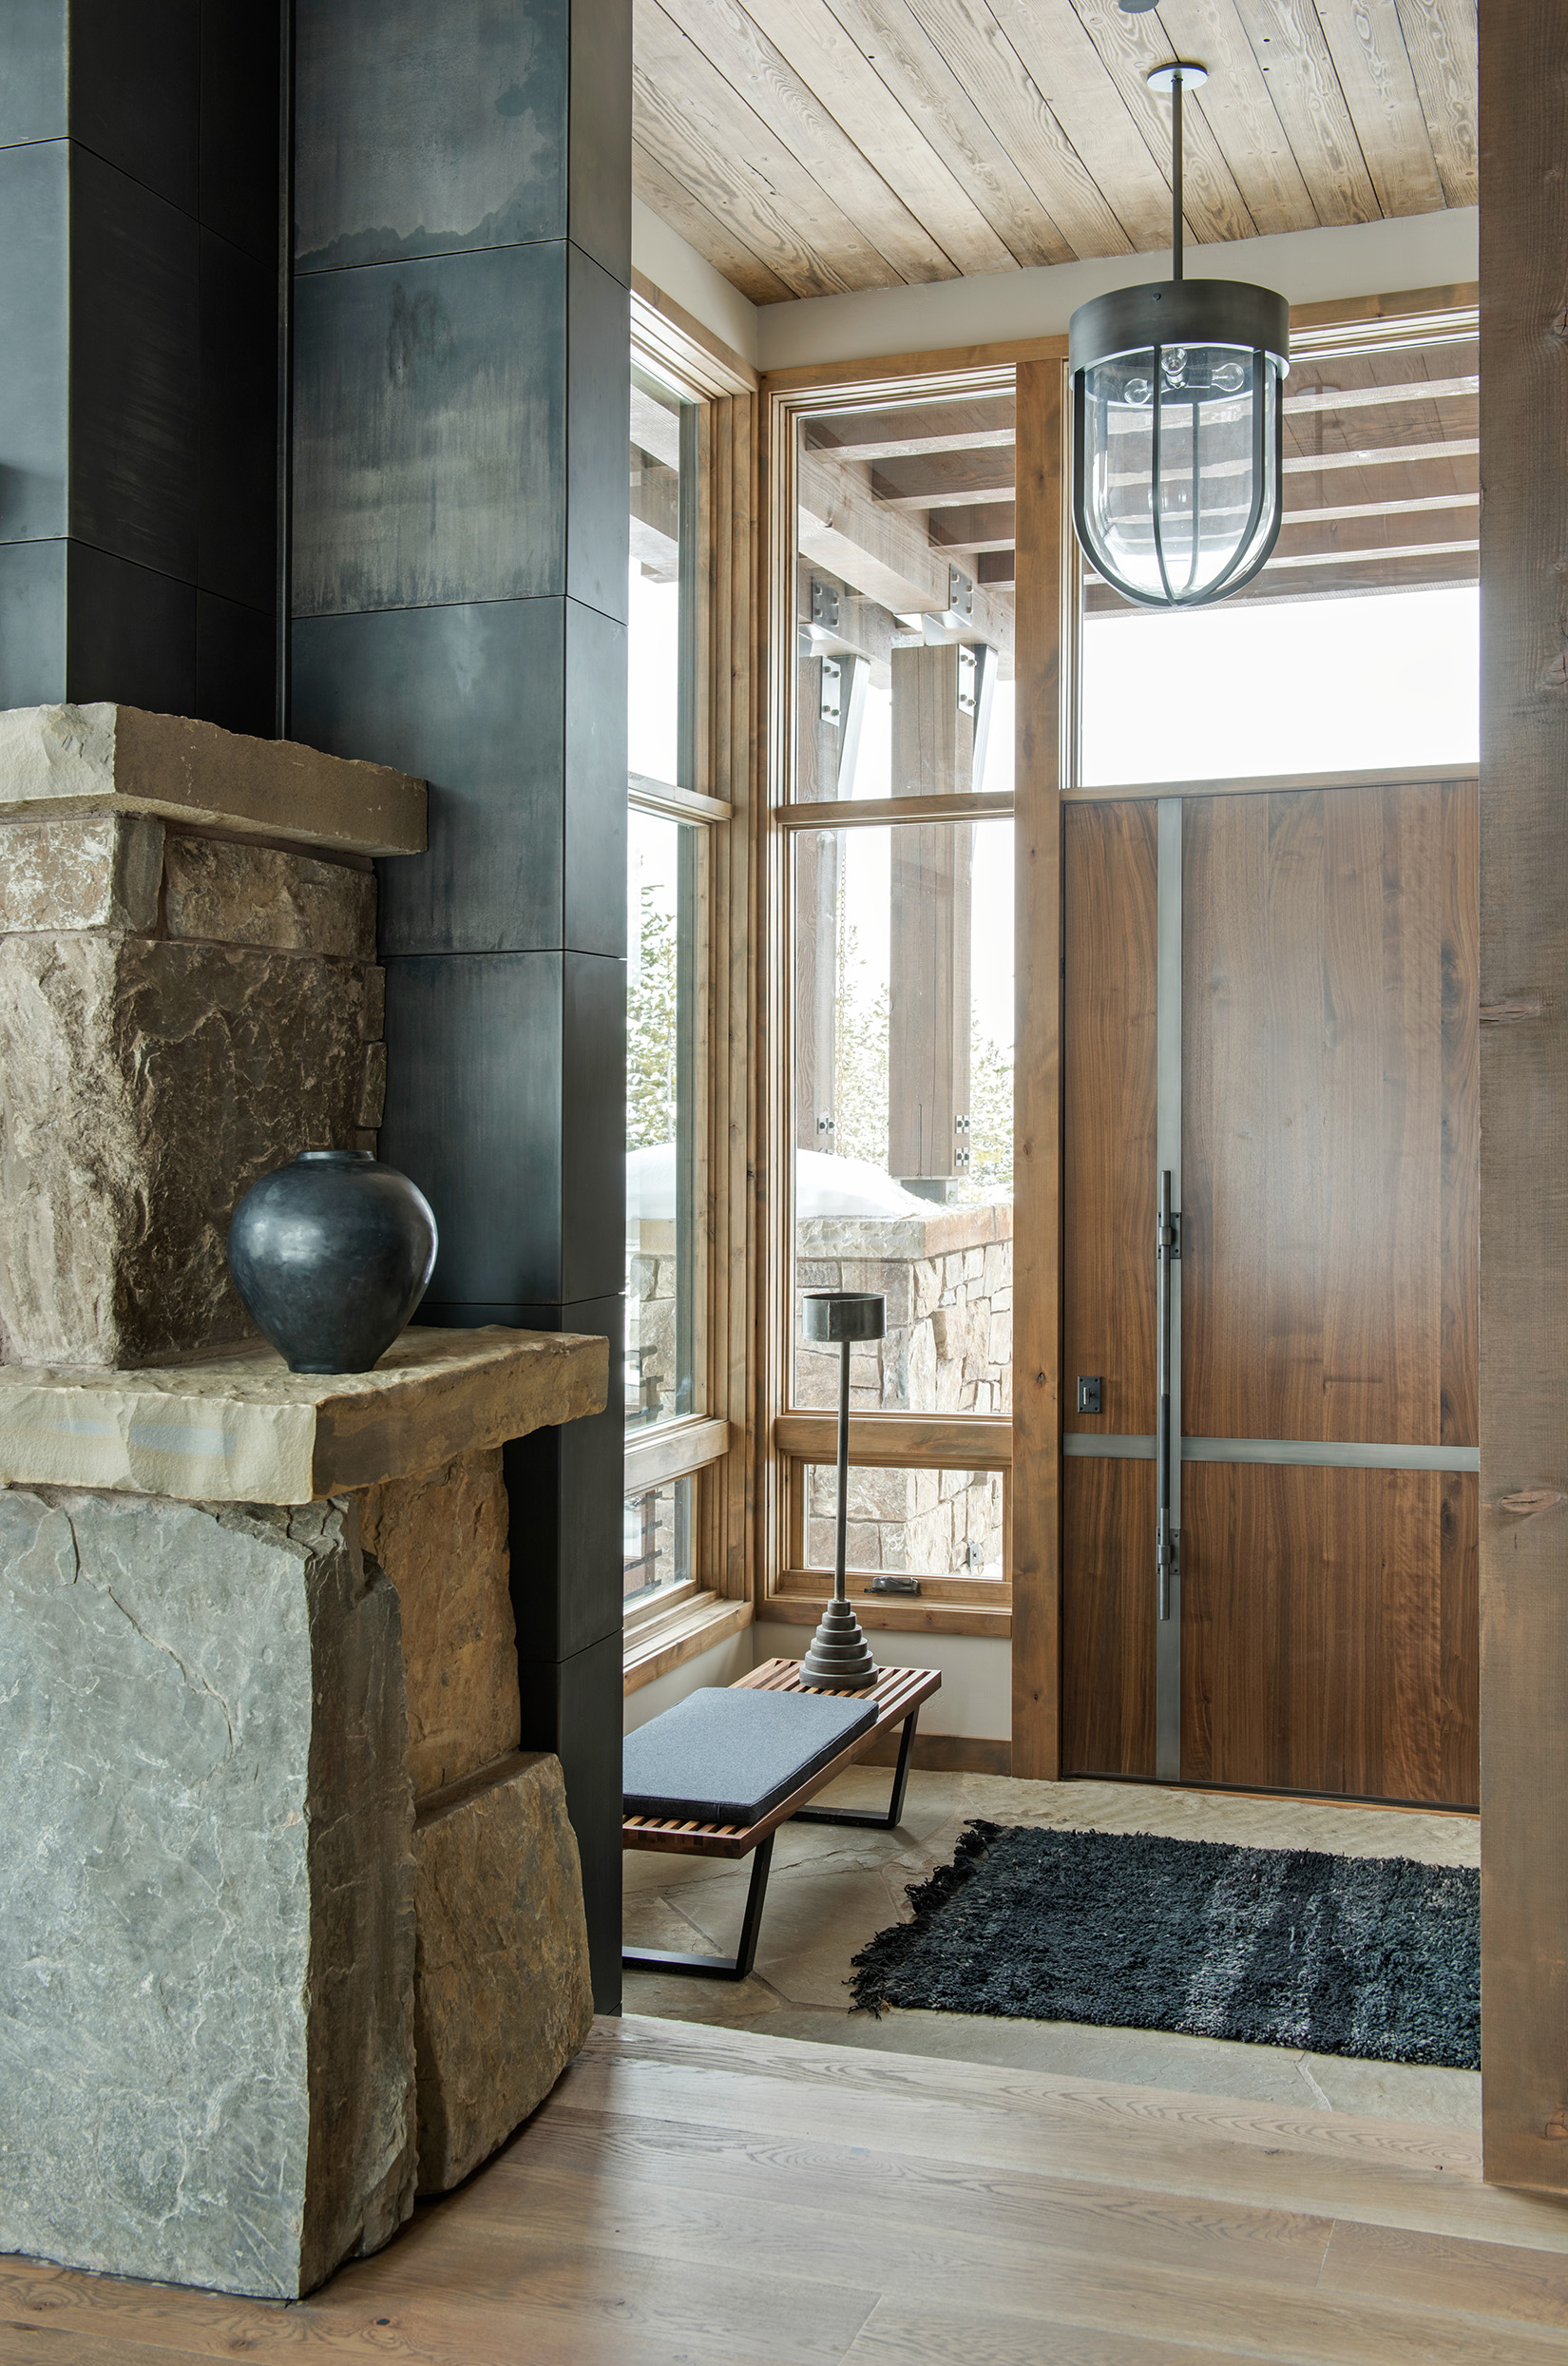 The entry is the first space you see when you walk into a home so it should be designed to impress. Nothing short of impressive with this stunning entry. Again, the wonderful combination of the stonework, wood, and steel beams show off the creativity and talent of the architect.